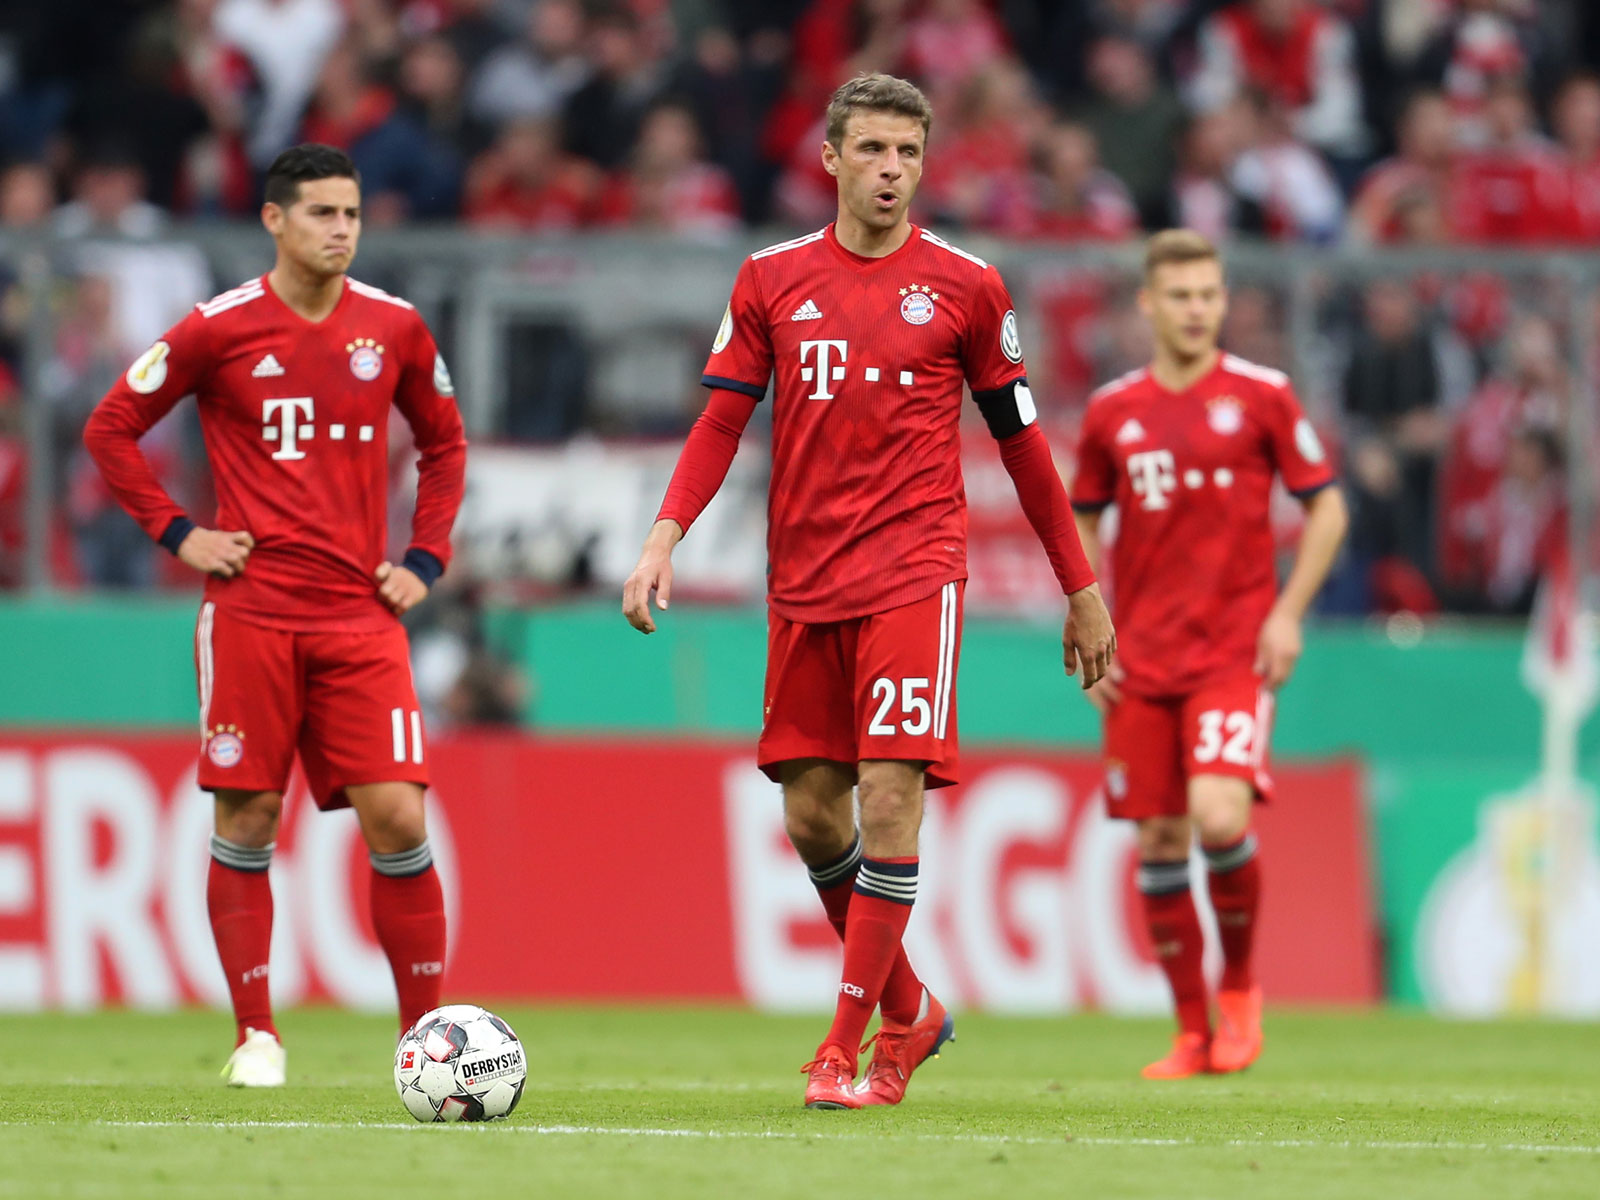 Bayern Munich is in a fight to win the Bundesliga again